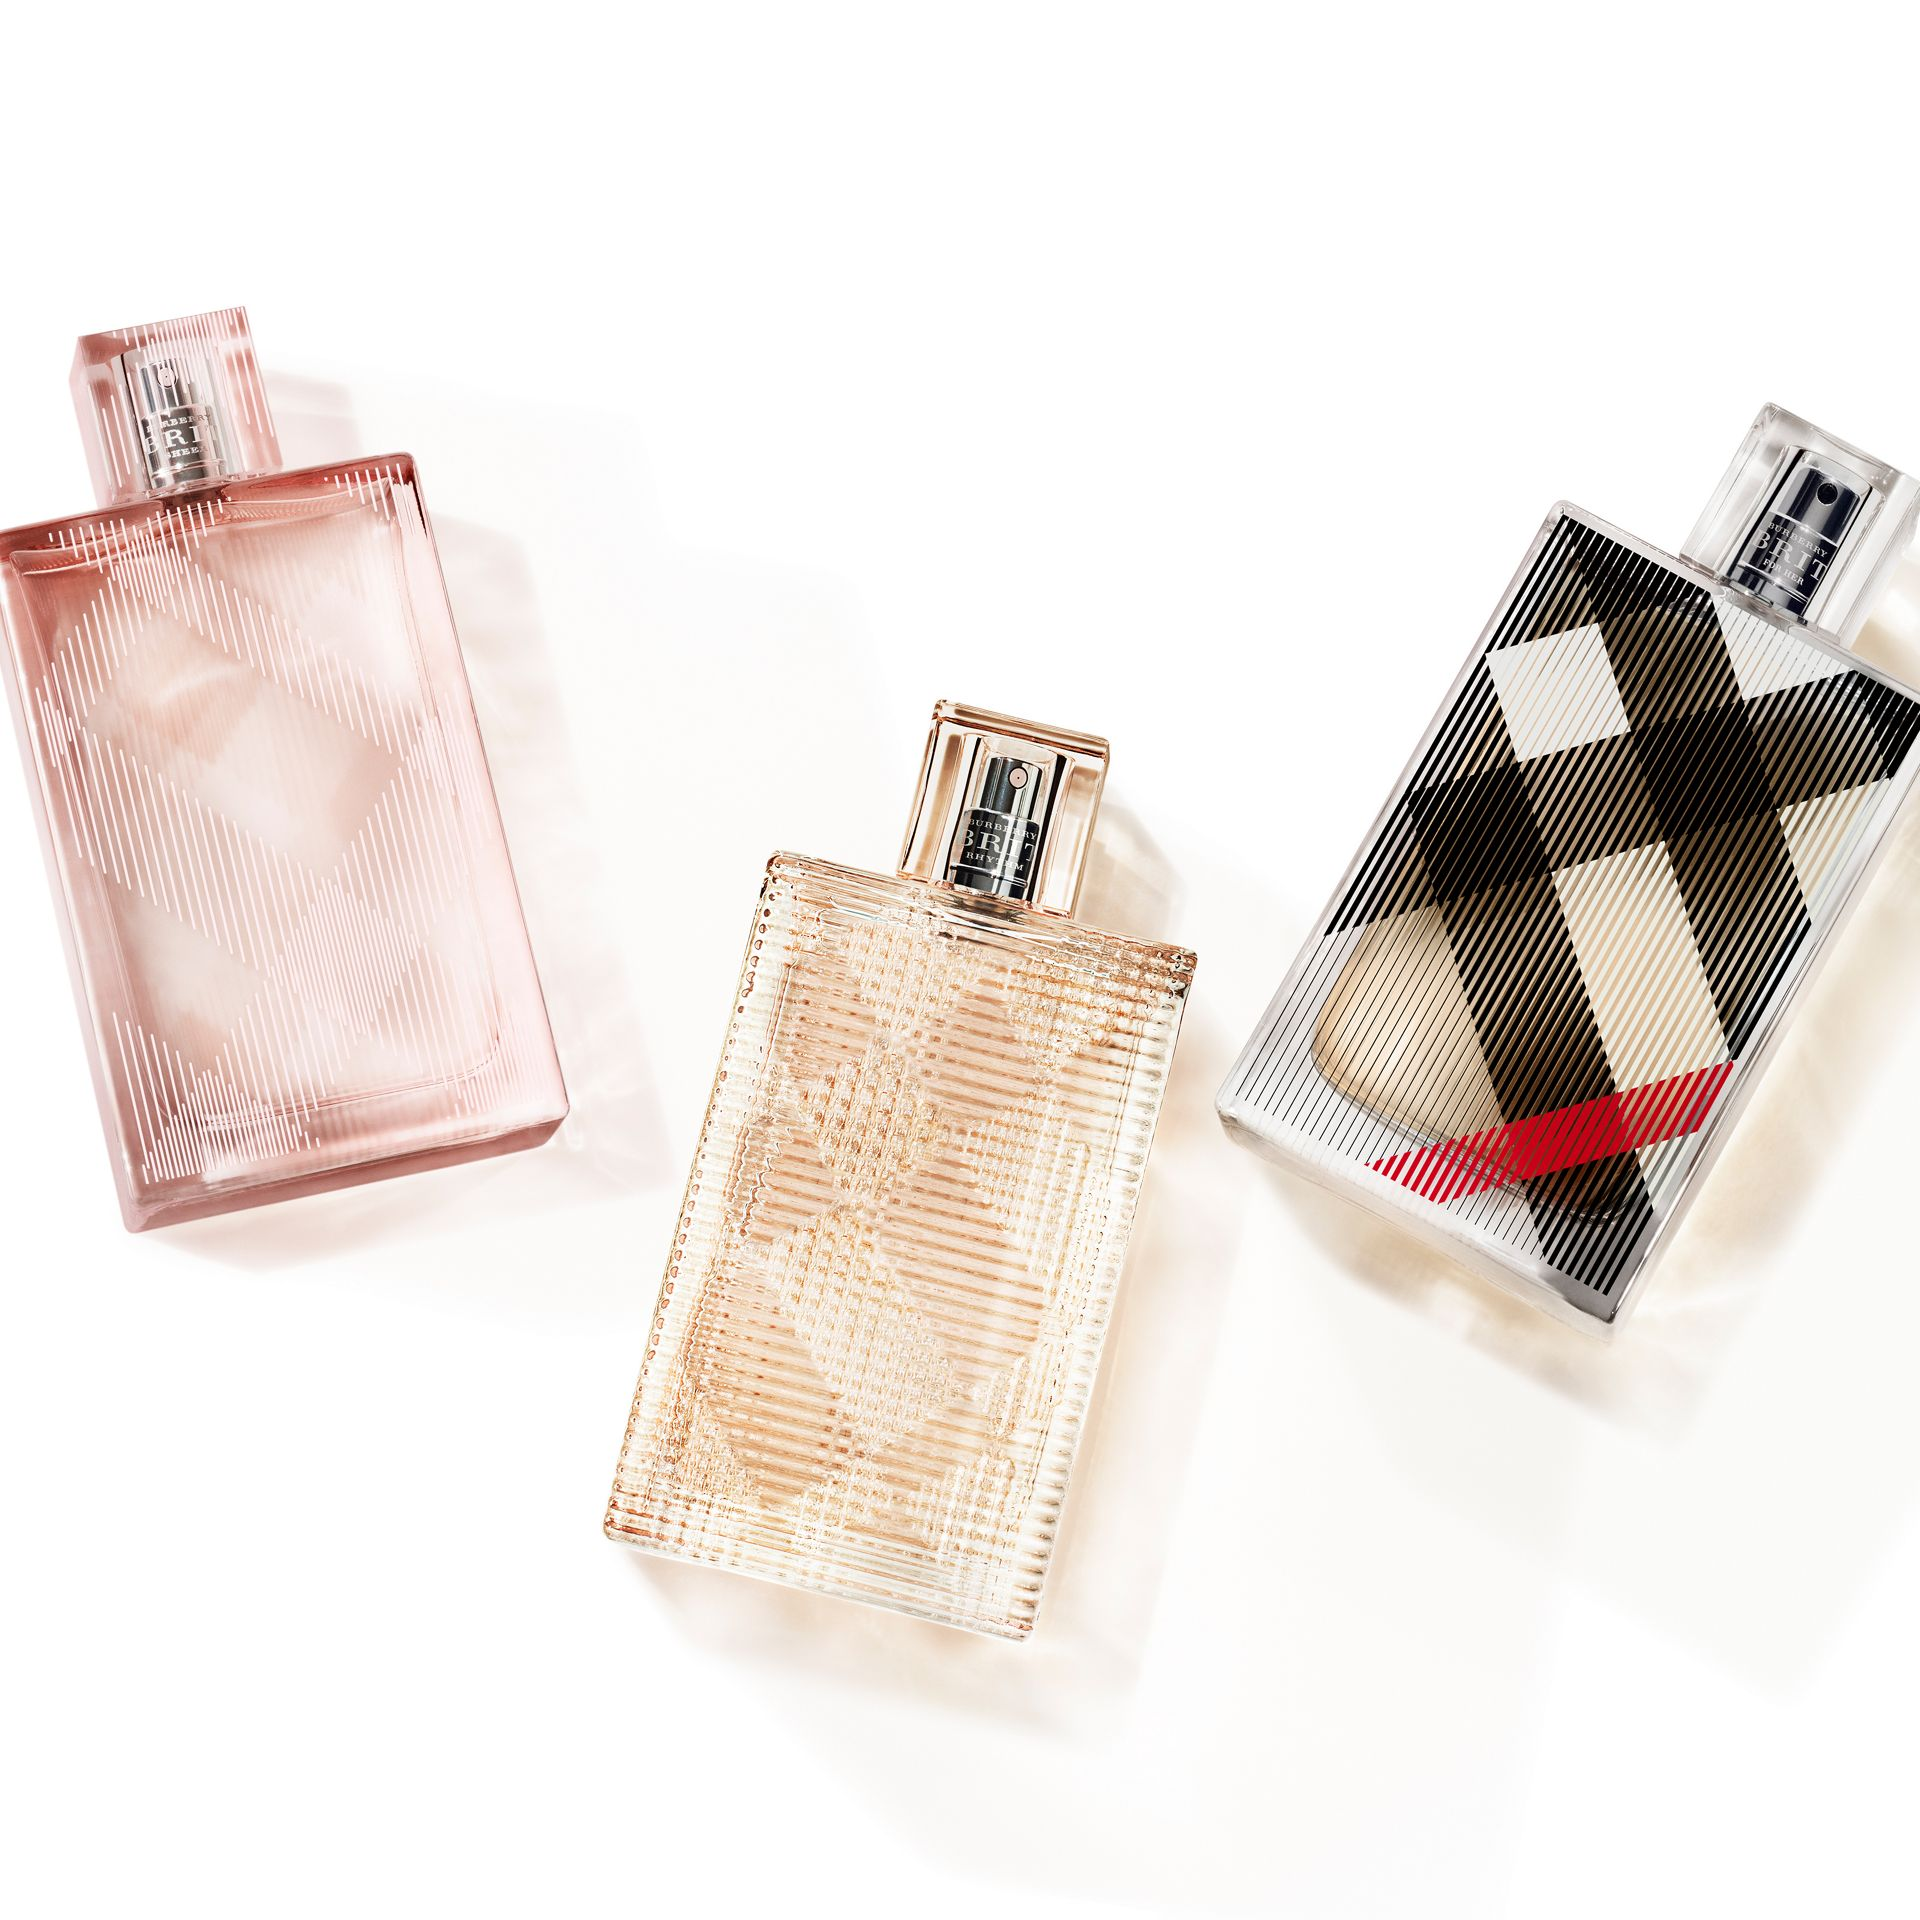 Burberry Brit Sheer Eau de Toilette 100ml - Women | Burberry Canada - gallery image 3